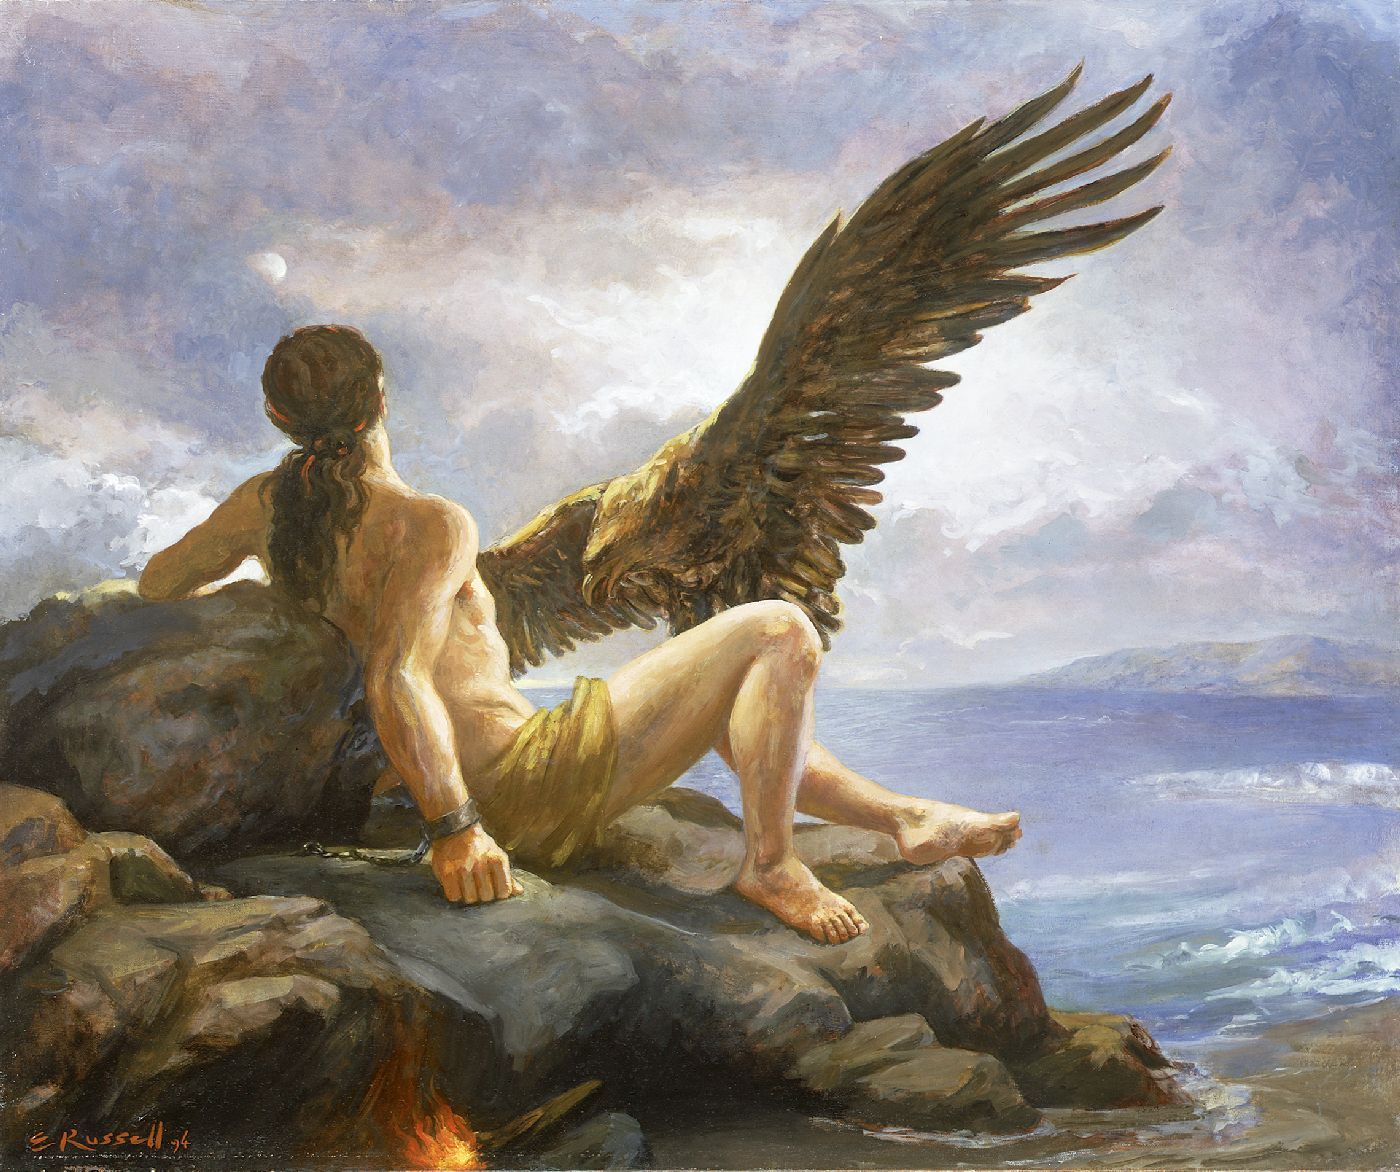 Prometheus' liver getting eaten by the eagle, by Elsie Russell